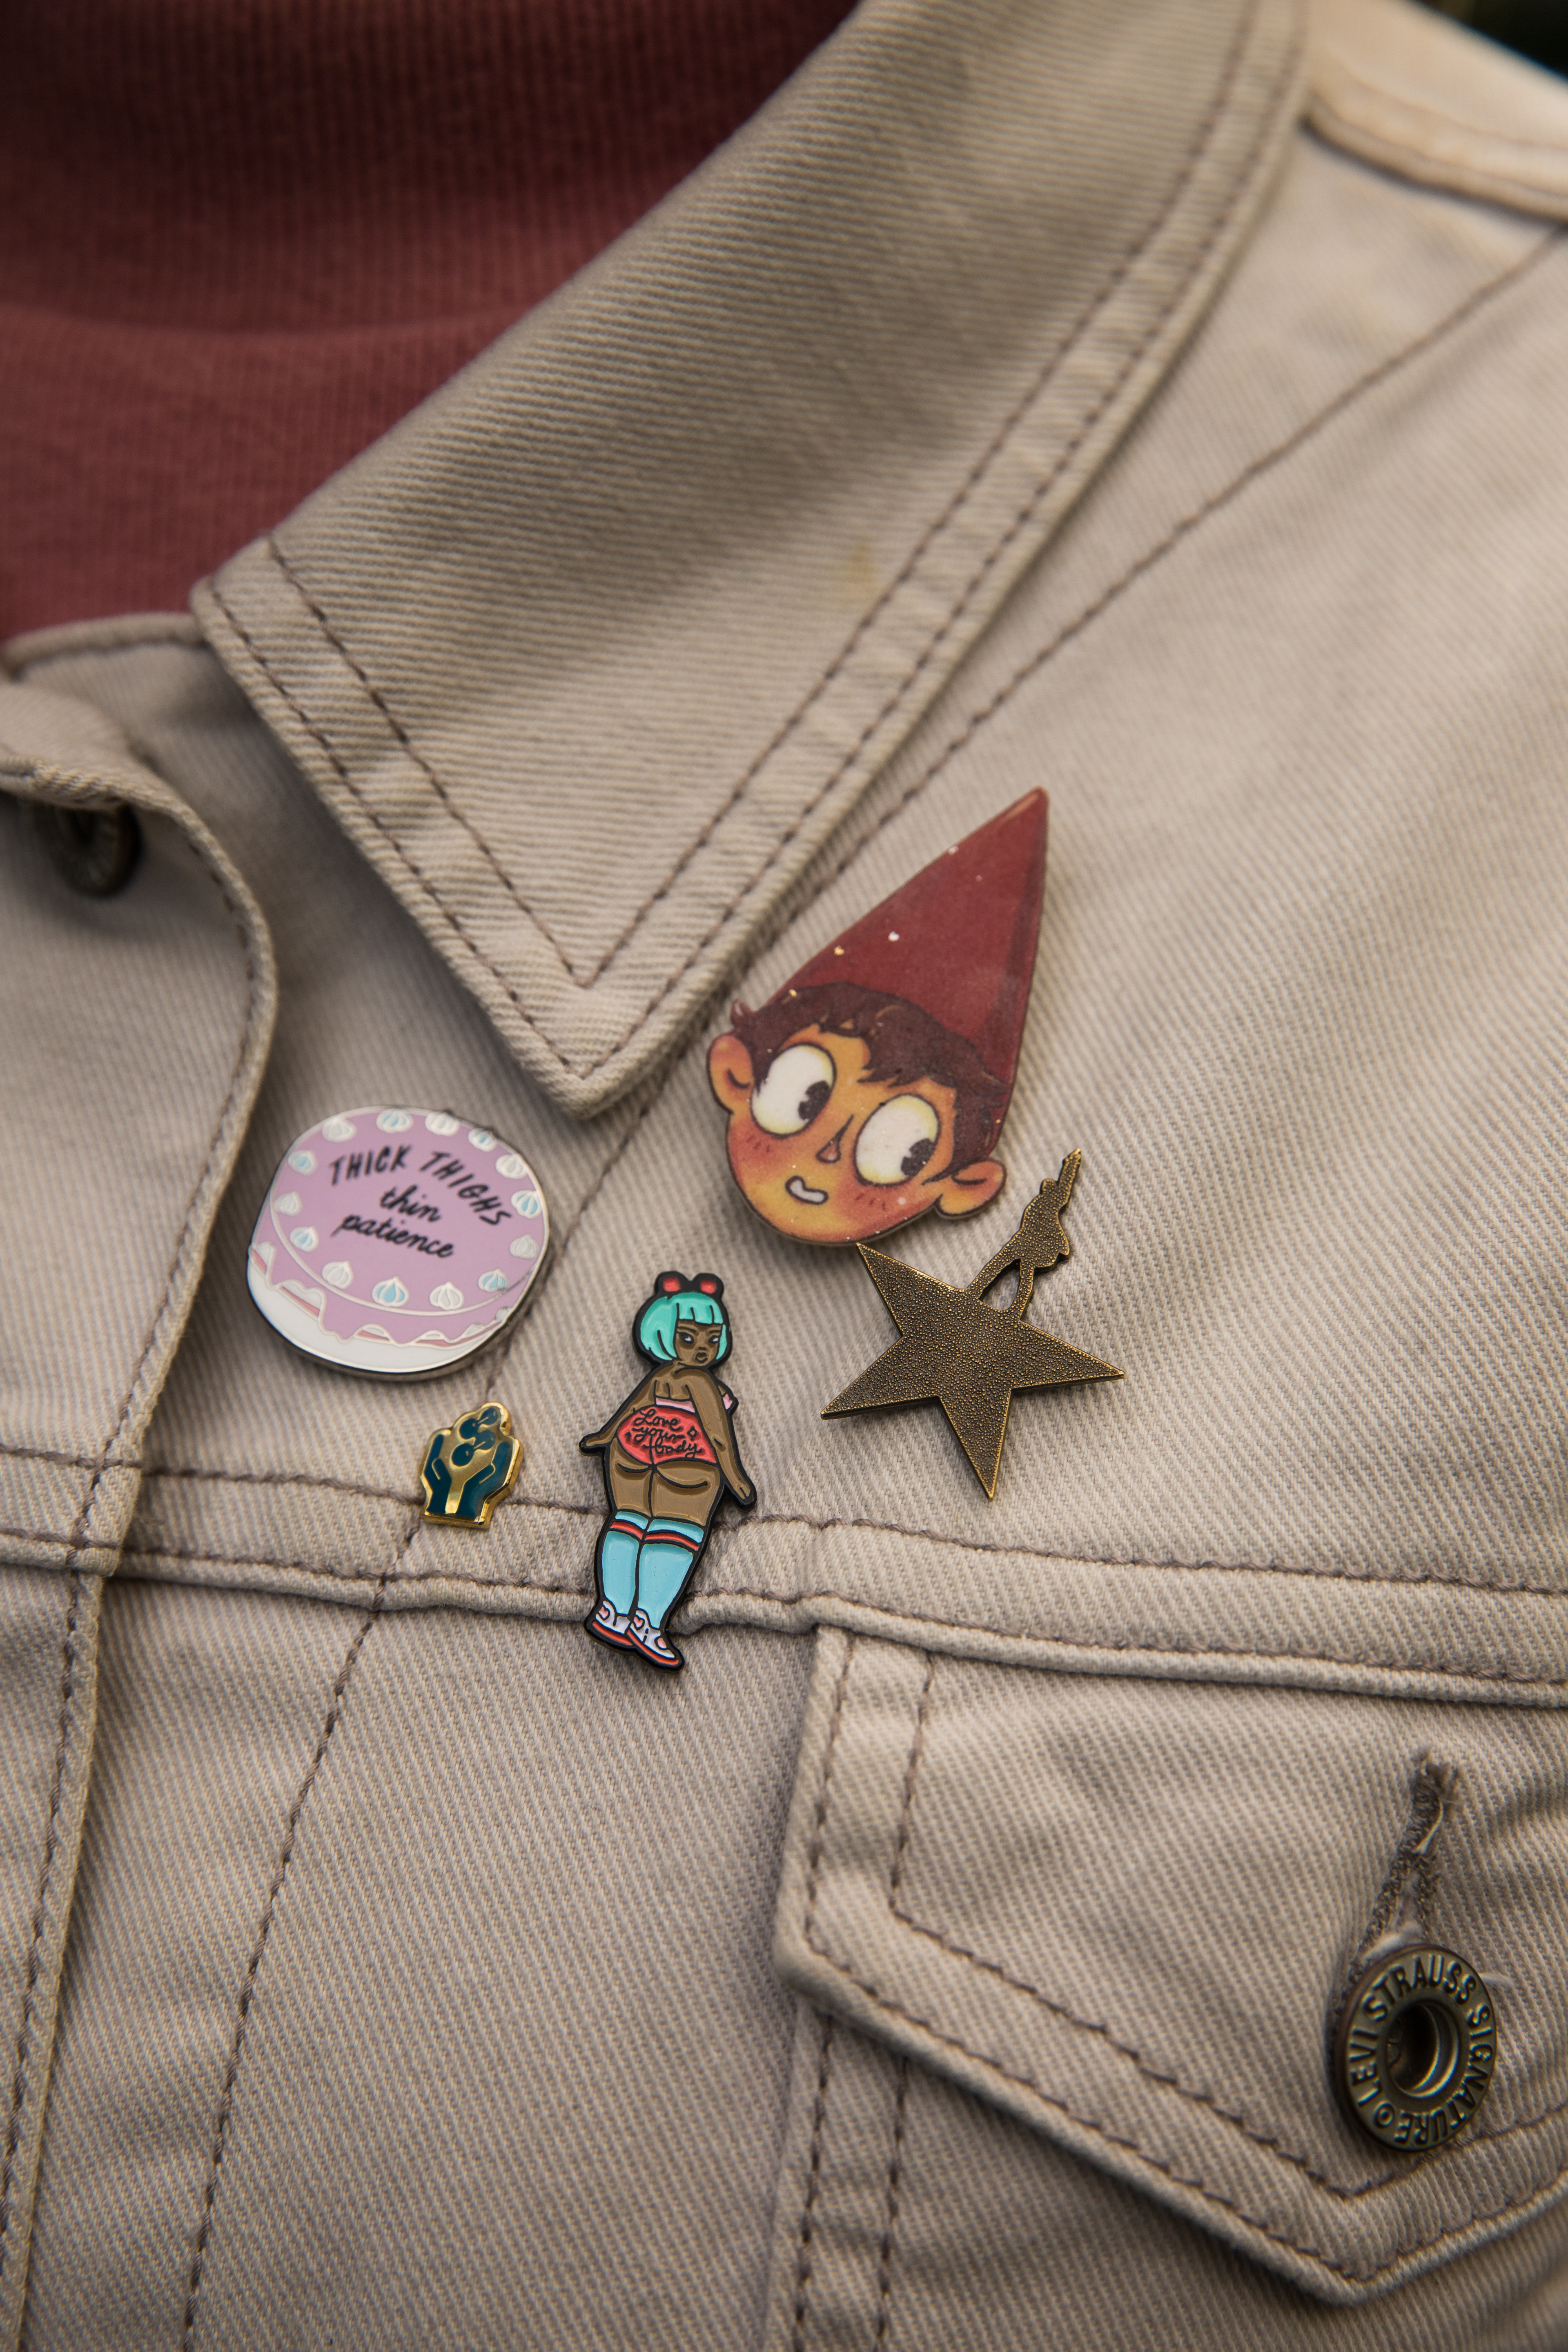 Add some flair to your autumn outfits with pins!